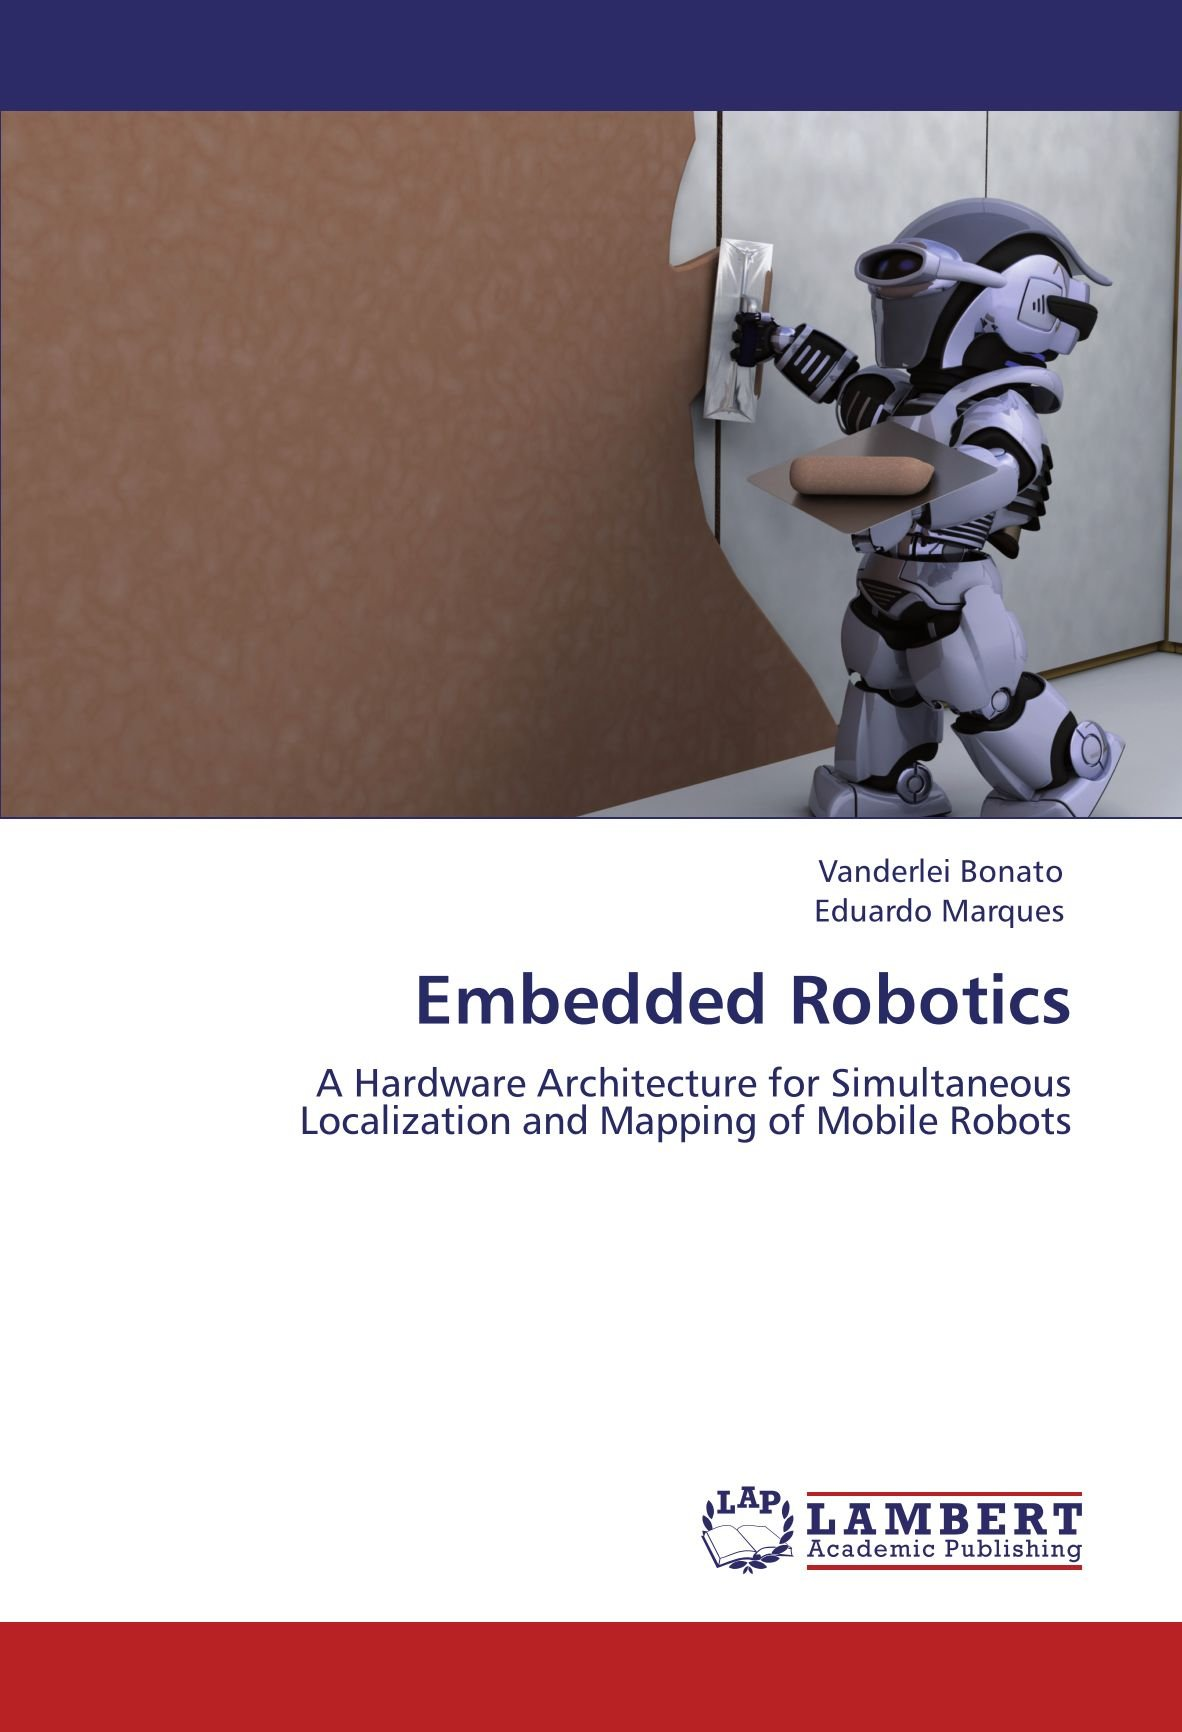 Embedded Robotics: A Hardware Architecture for Simultaneous